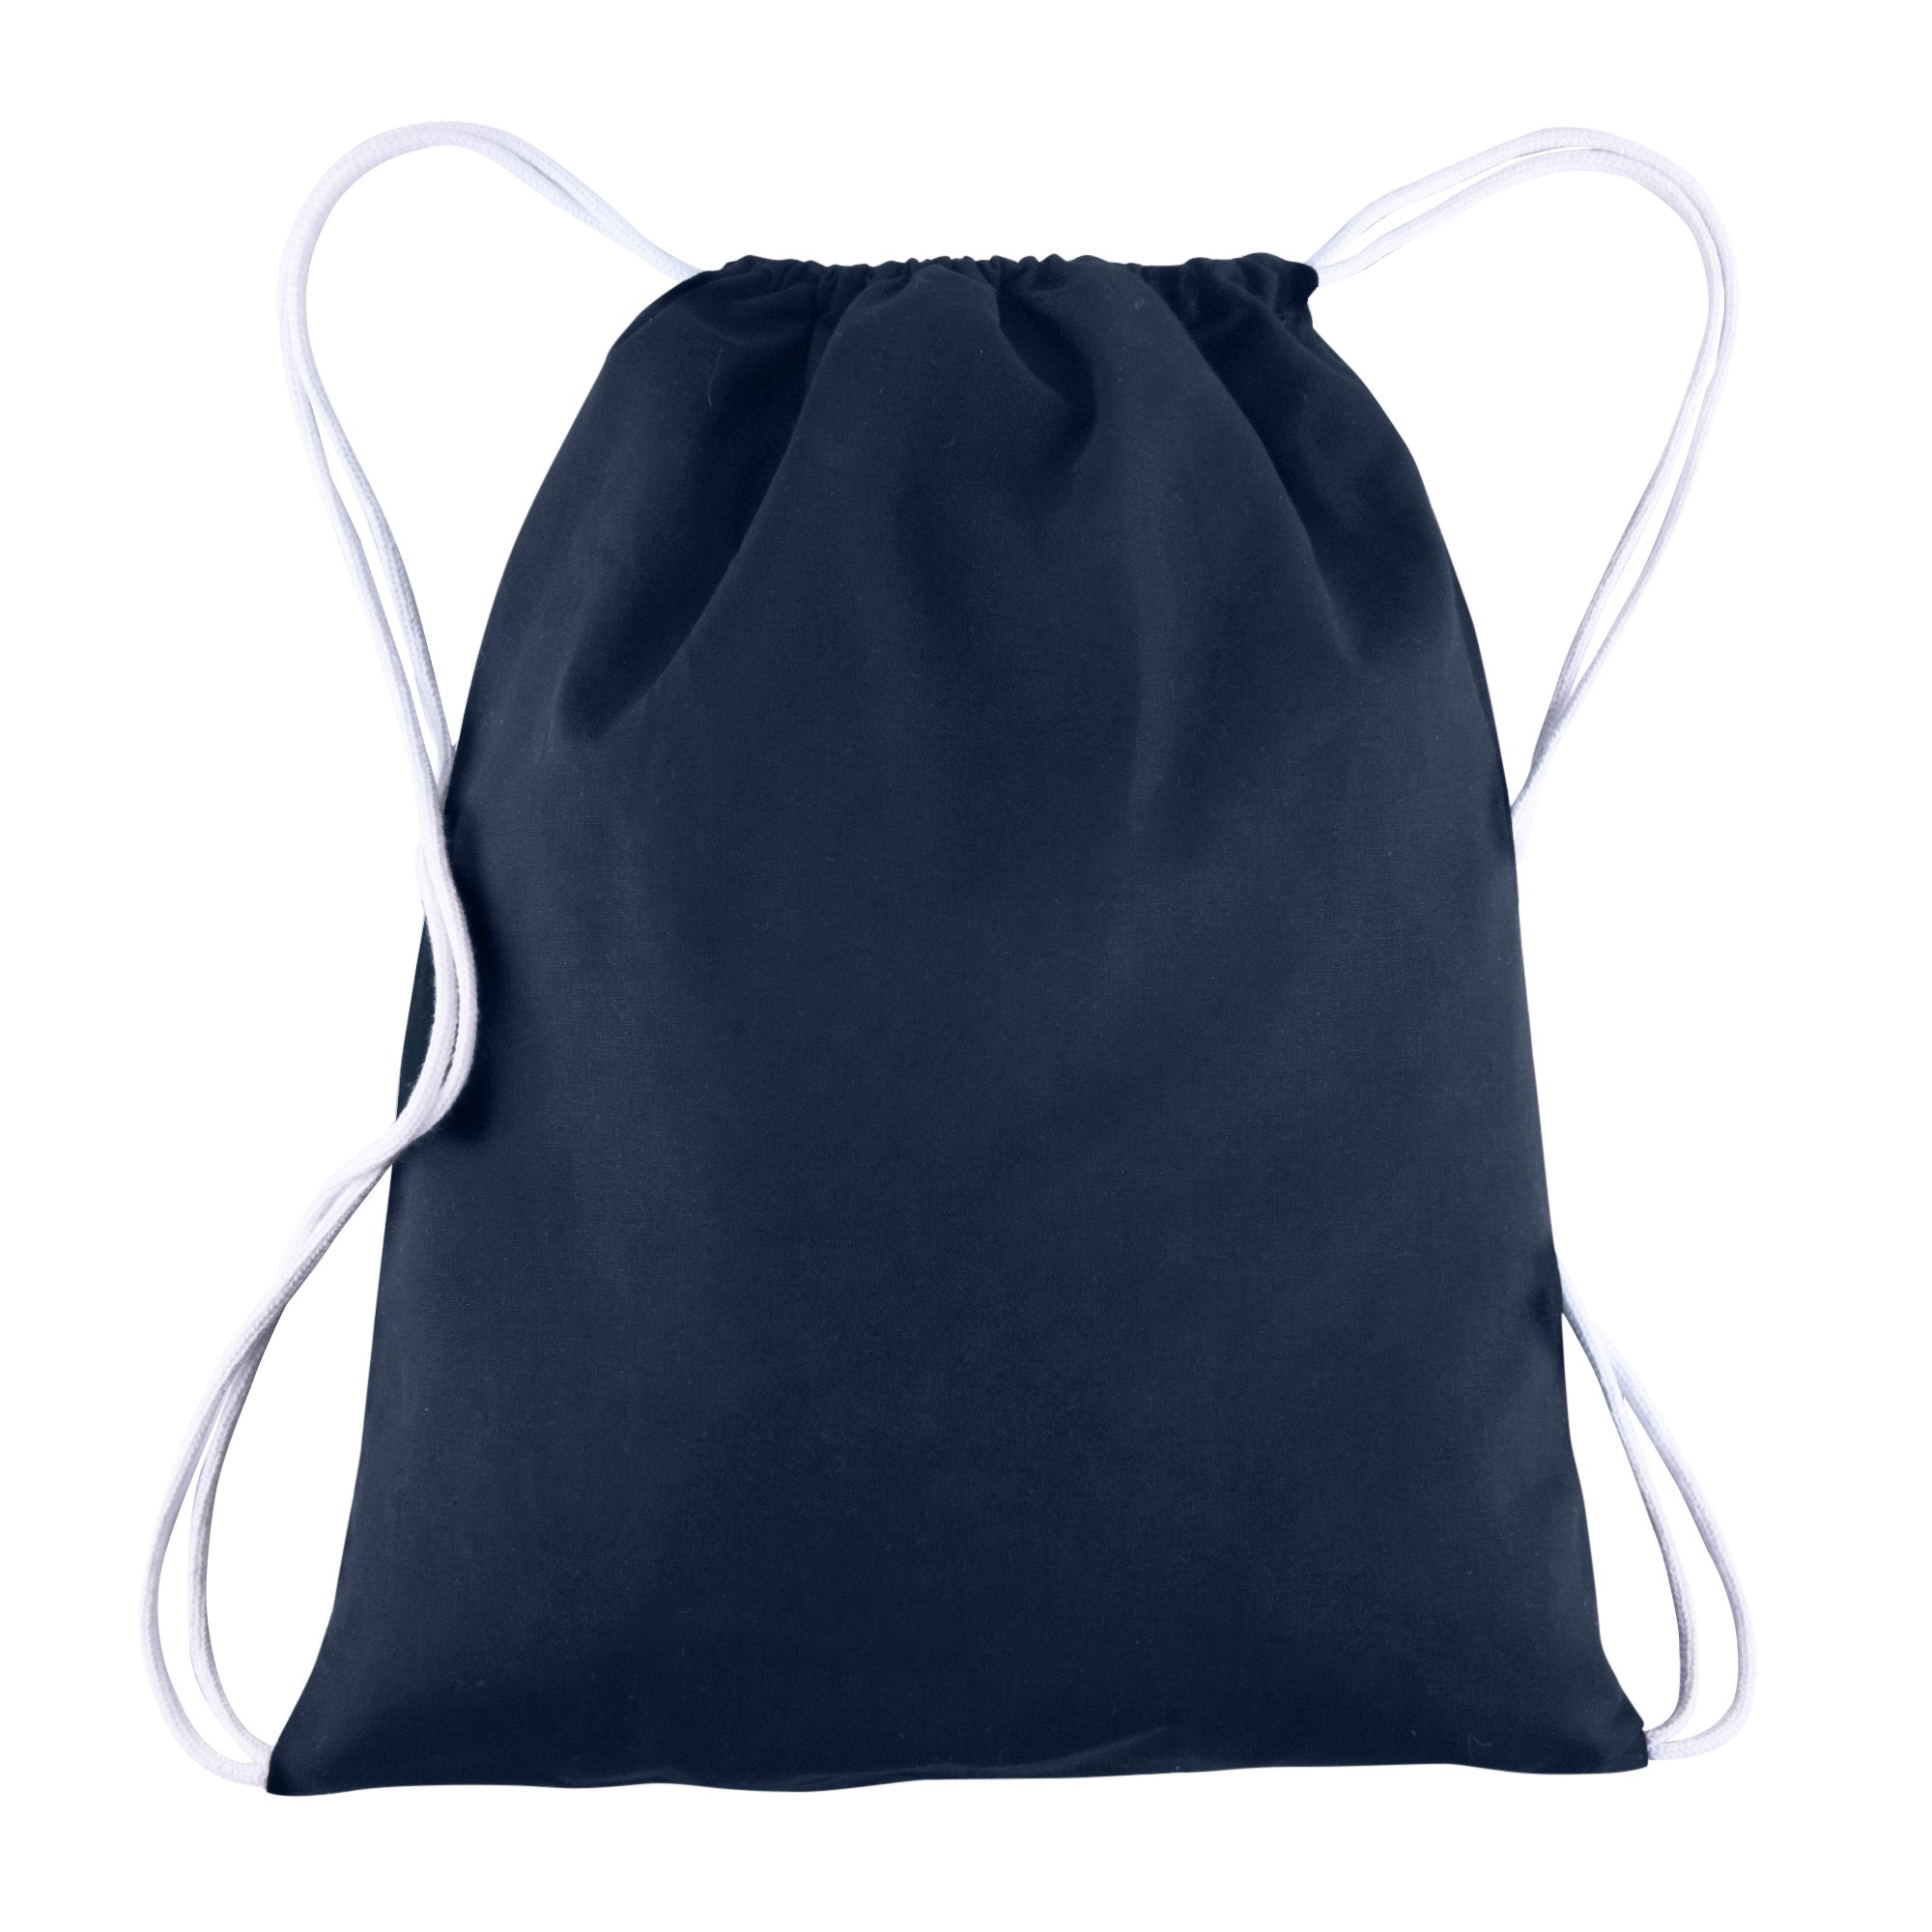 9d0c6fc01130 Cotton Canvas Drawstring Backpacks Bags - 12 Pack - Bulk Pack ...